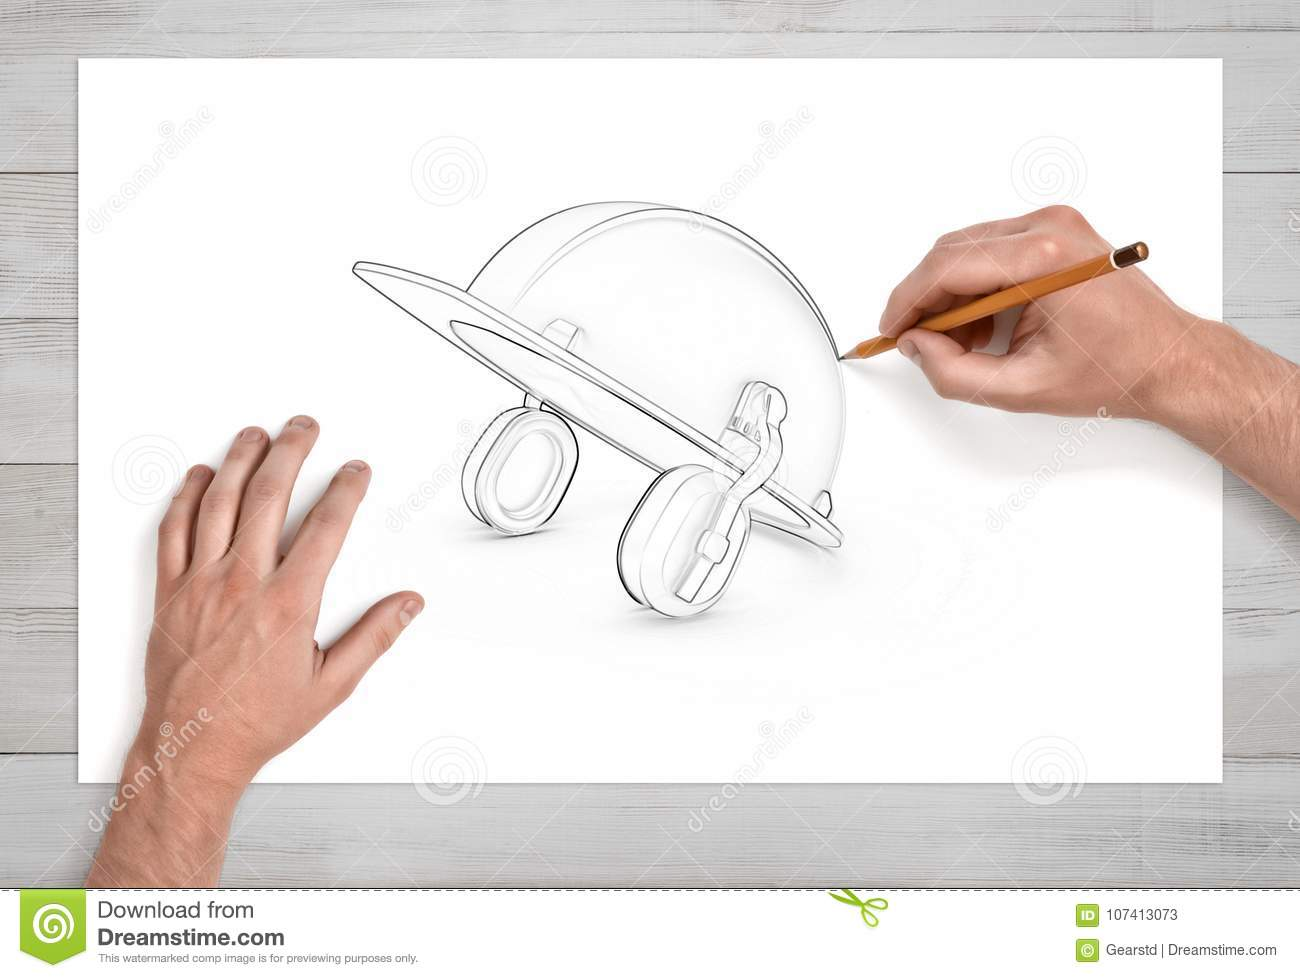 Two male hands draw a pencil sketch of an industrial hard hat with